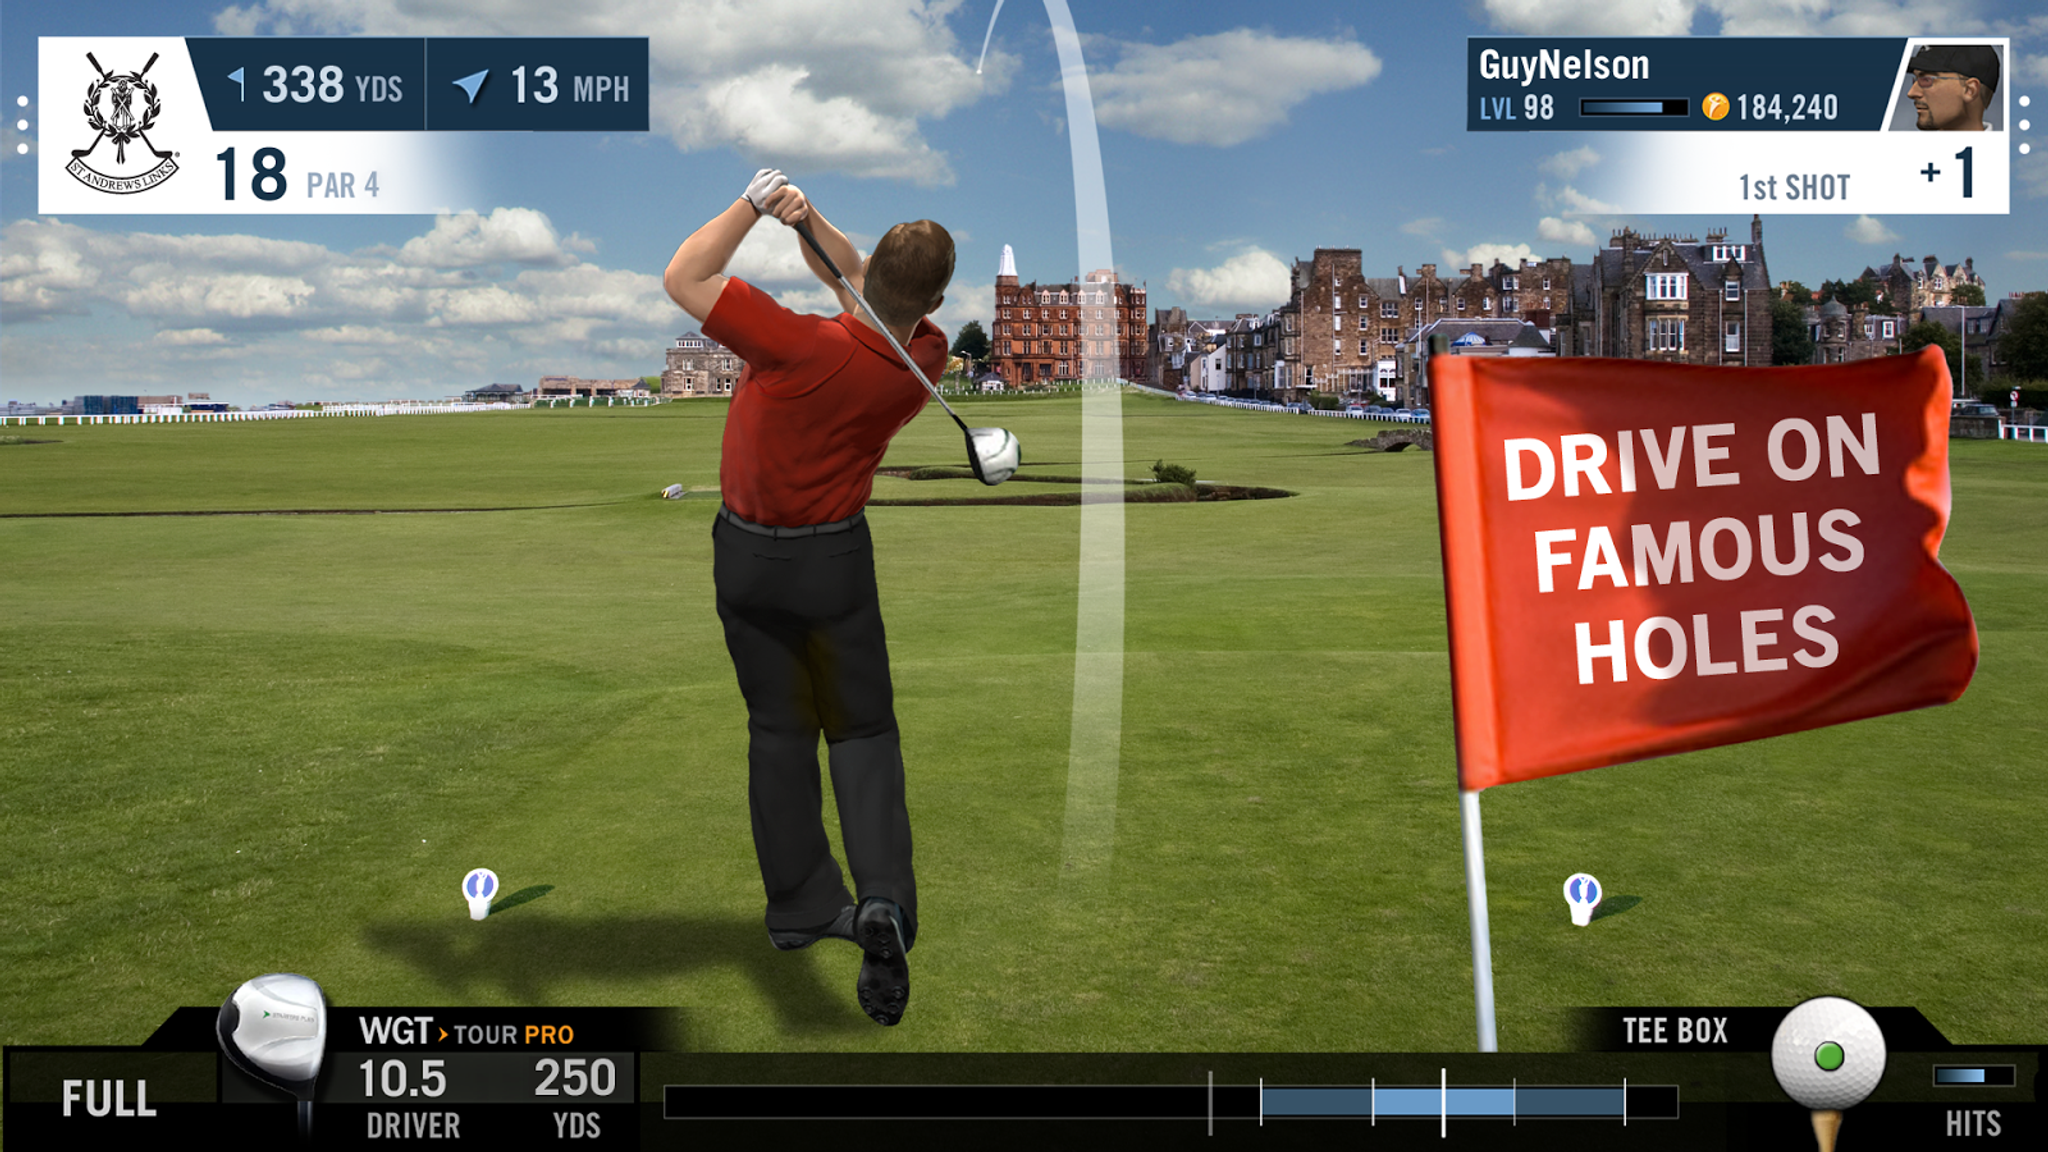 Online virtual betting games in golf mine bitcoins faster